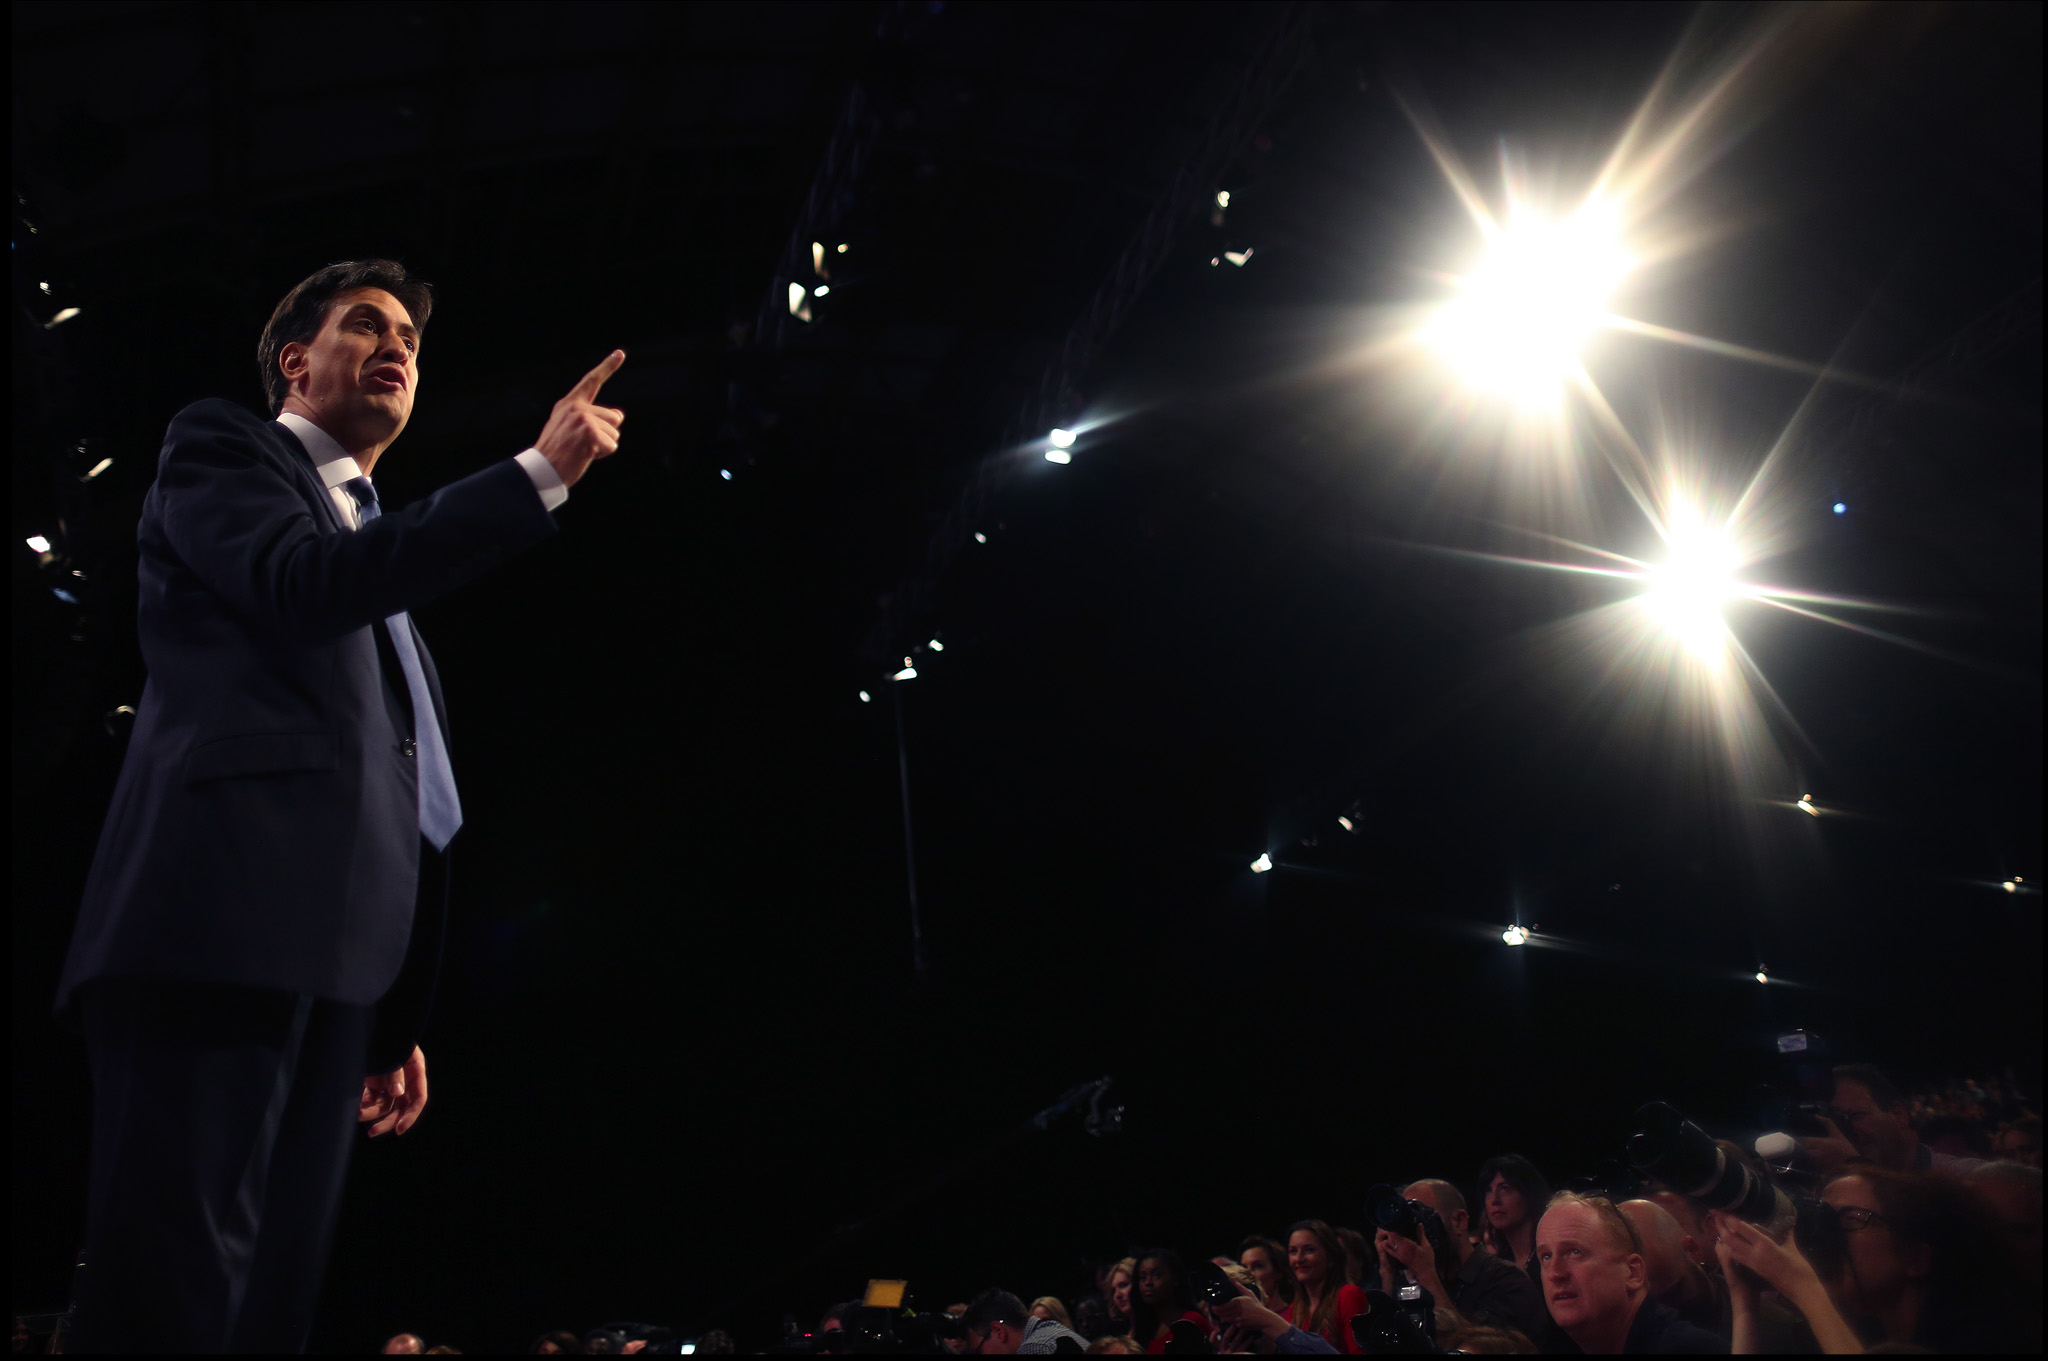 Ed Miliband, Leader of the Labour party, delivers his keynote speech at the Labour party conference in Manchester.